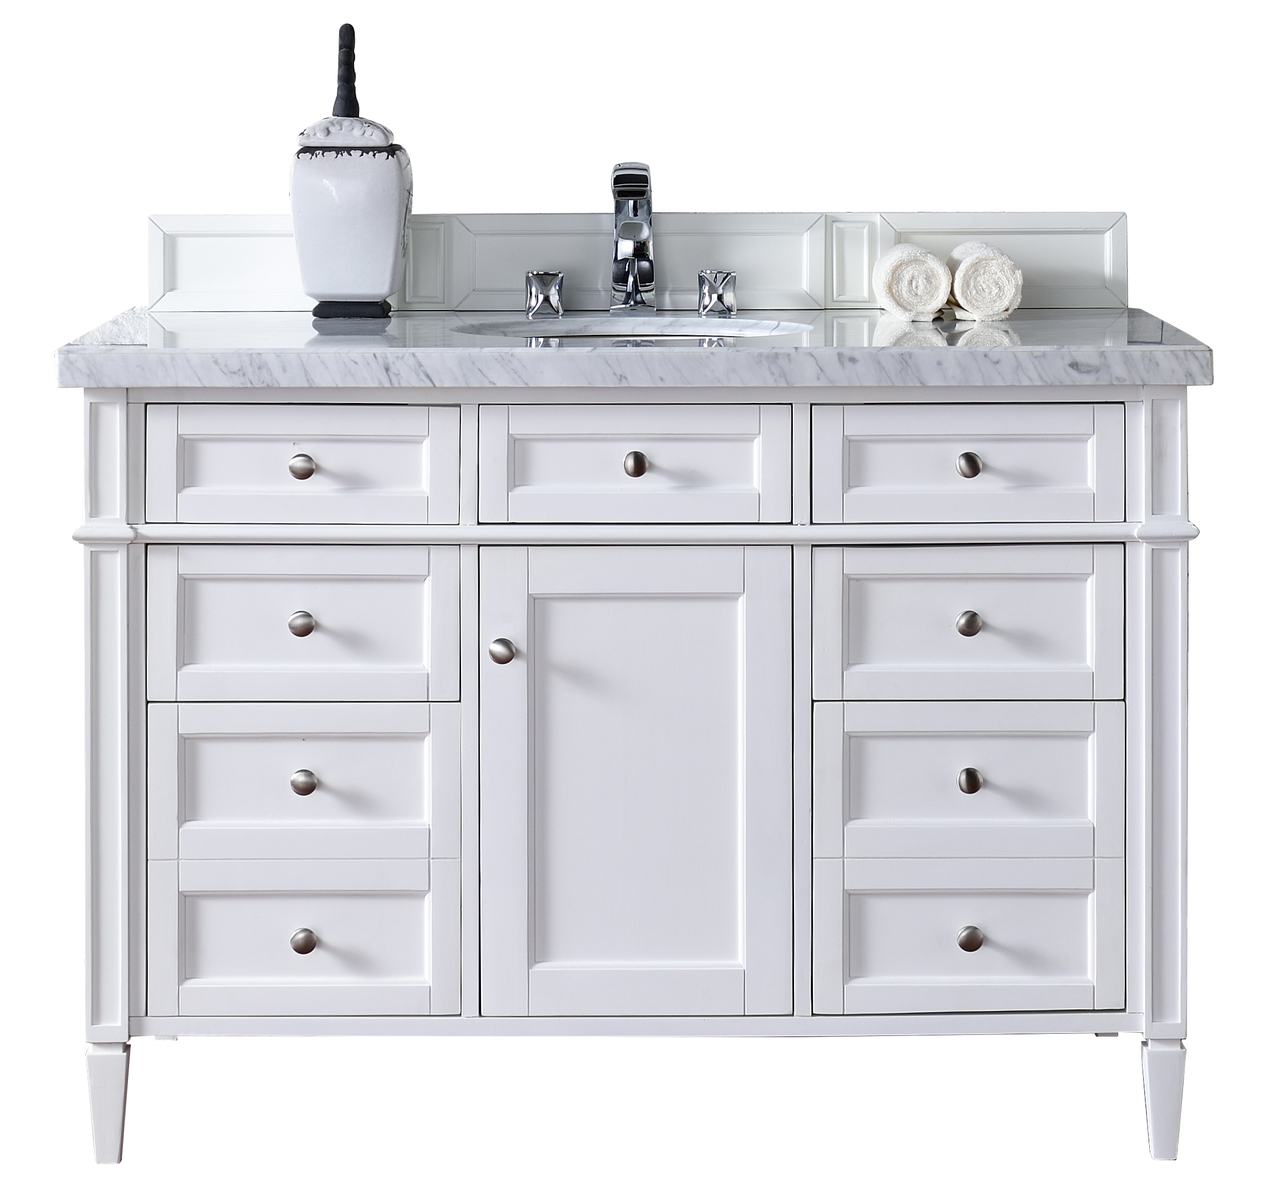 Contemporary 48 inch single bathroom vanity white finish for Restroom vanity